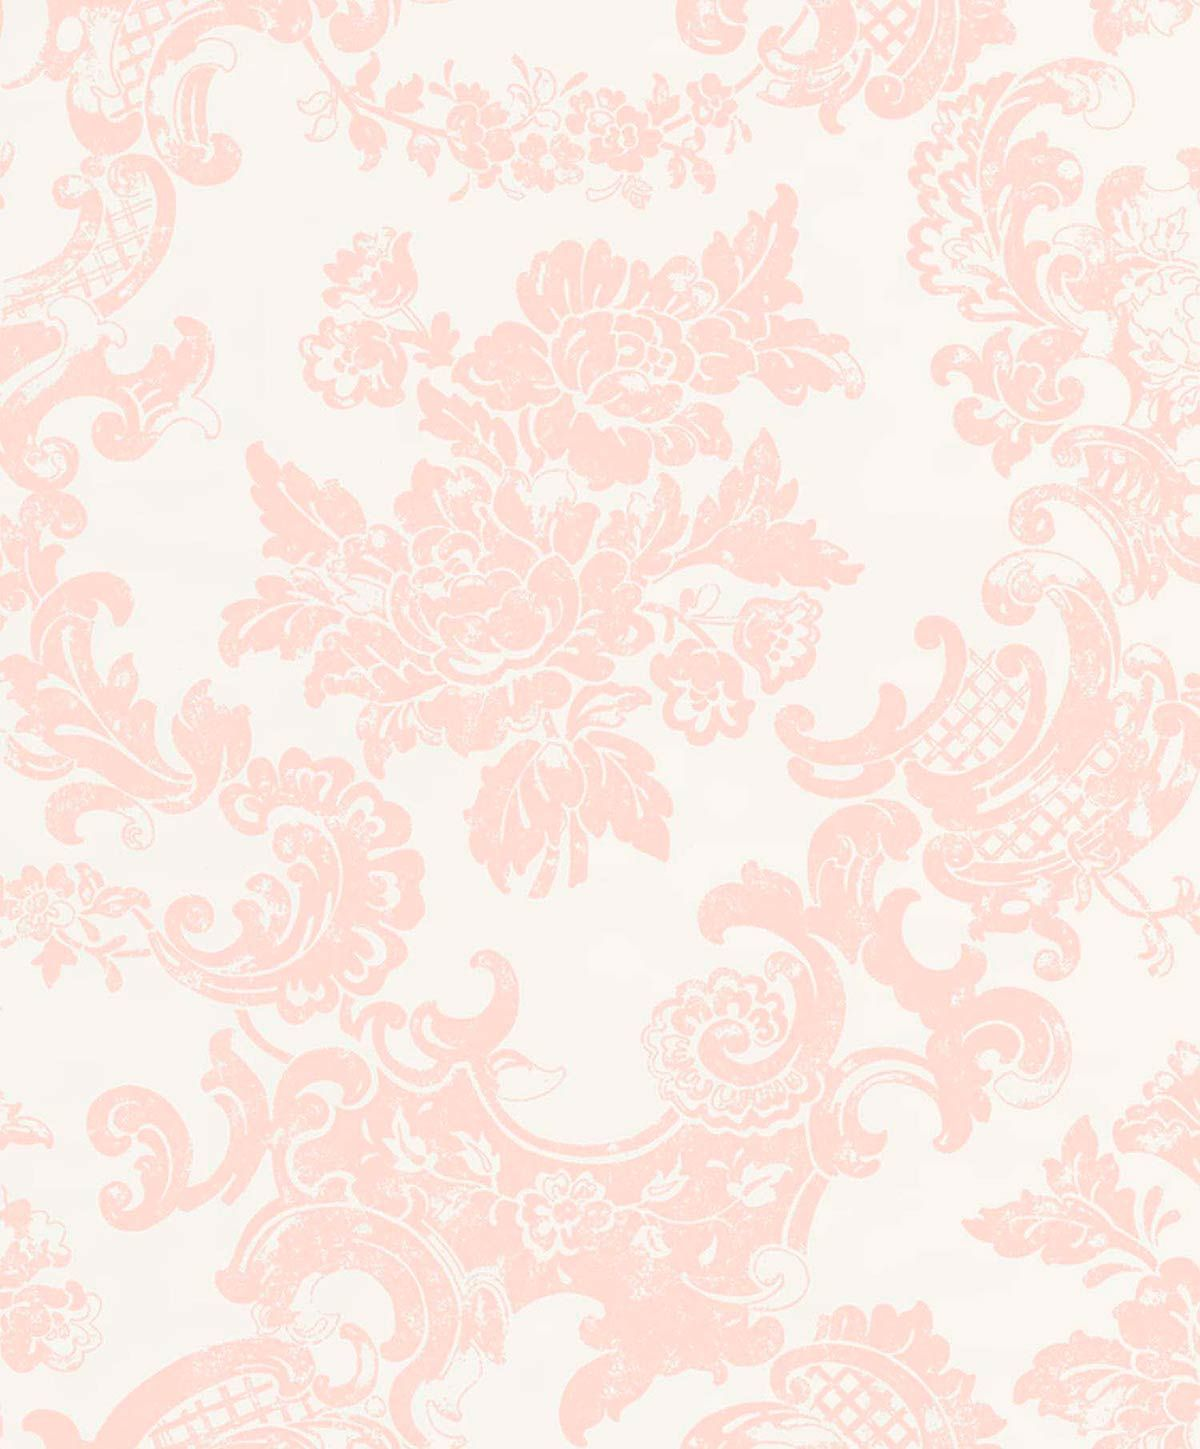 A Gorgeous Lace Effect Wallpaper Vintage Lace Recreates The Beauty Of Bygone Times And Is Perfectly Lace Wallpaper Pink Damask Wallpaper Grey Damask Wallpaper